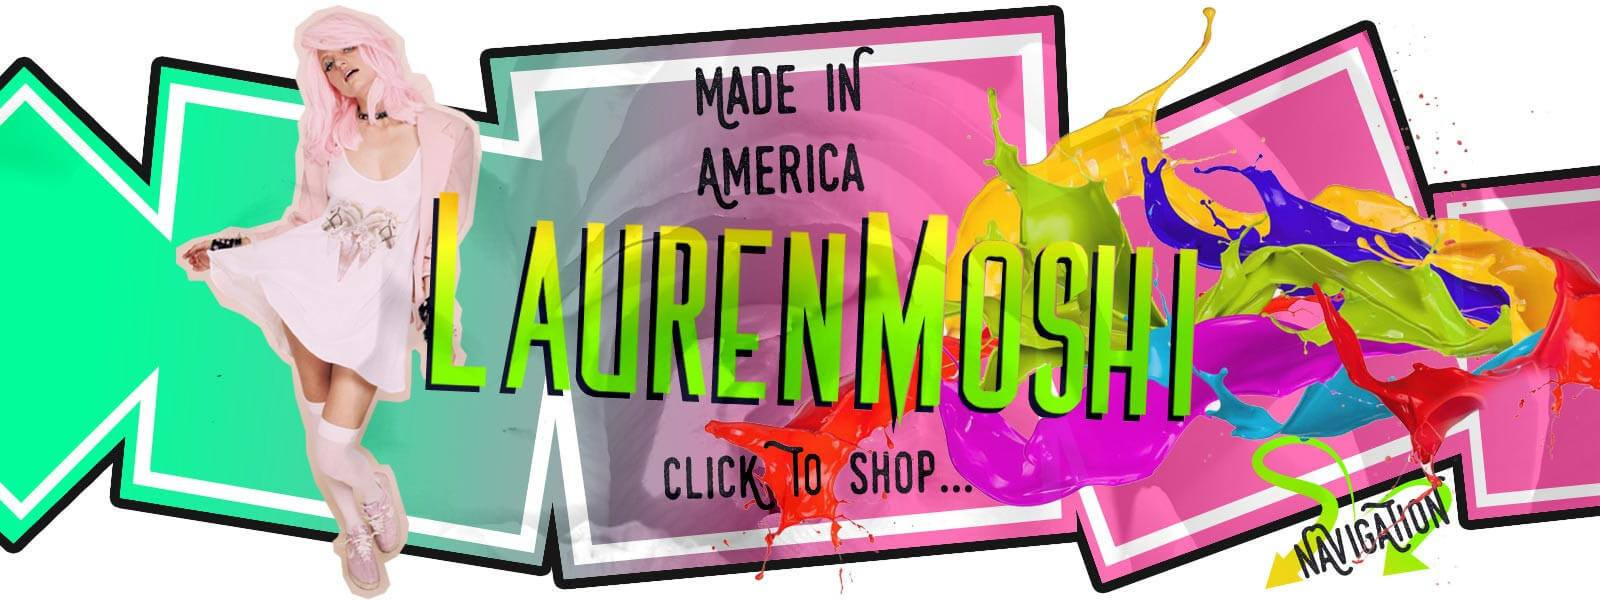 Shop Lauren Moshi Clothing Online Now